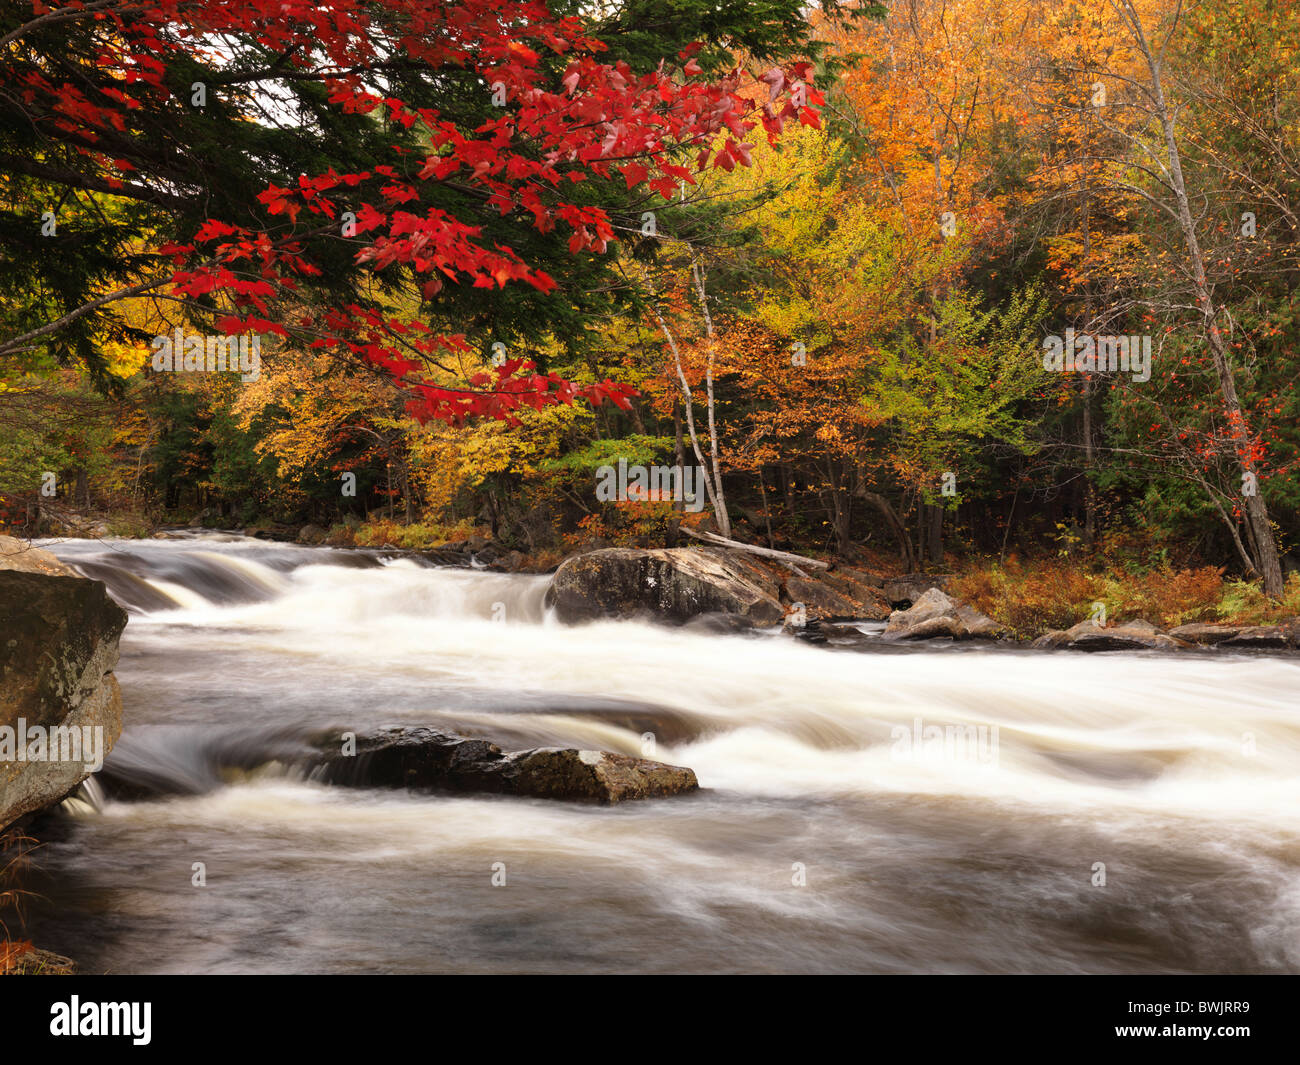 beautiful fall nature scenery of oxtongue river rapids. algonquin